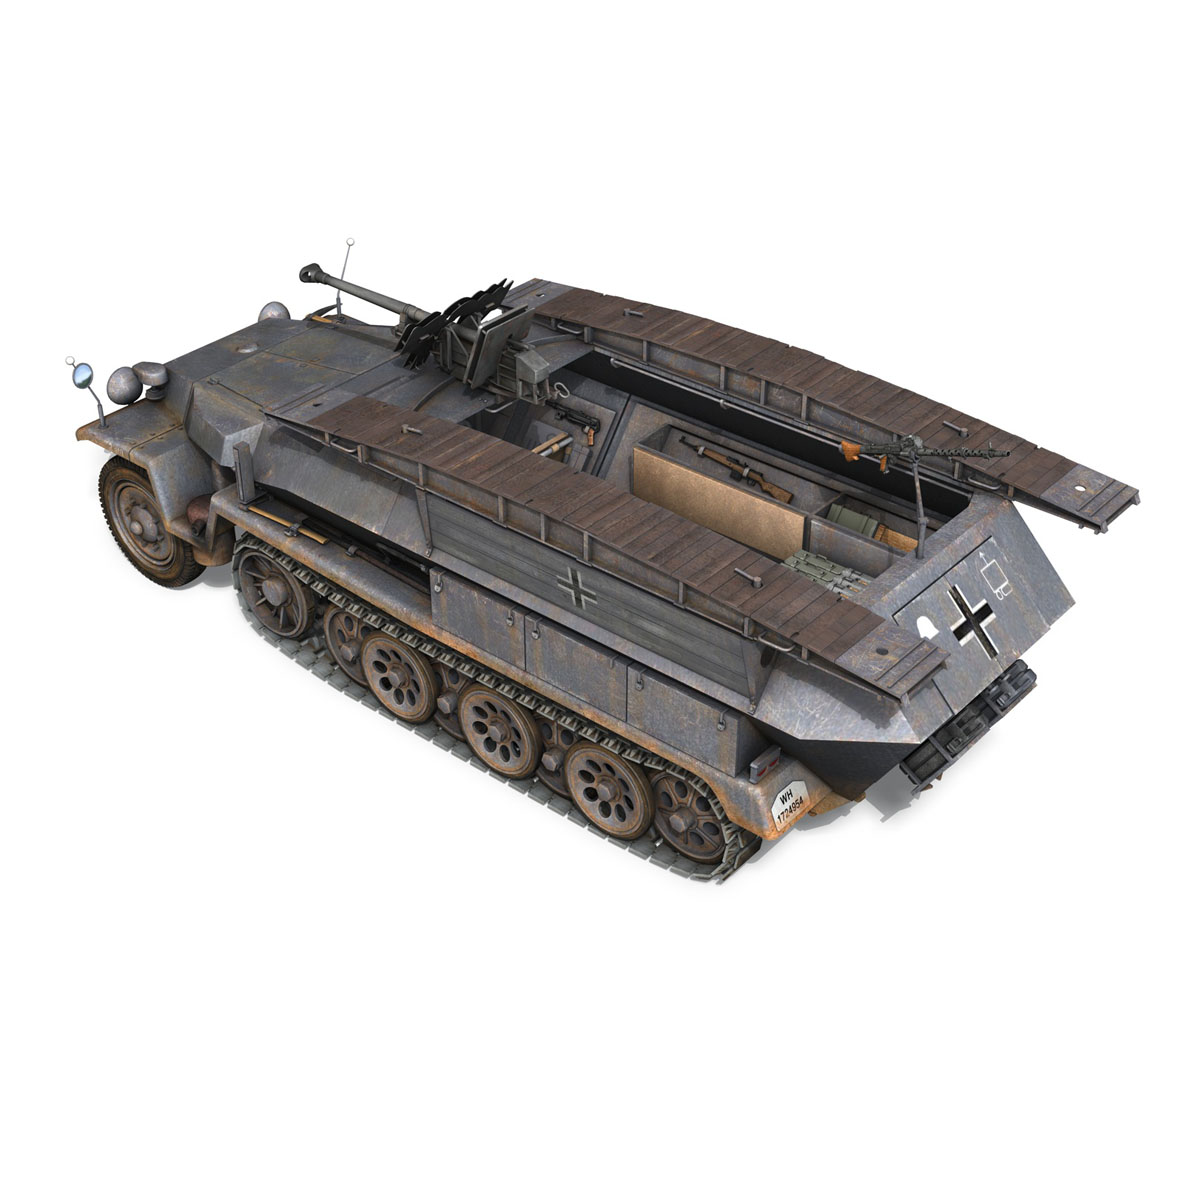 sd.kfz 251/7 ausf.c – pioneer assault bridge 3d model 3ds fbx c4d lwo obj 201523